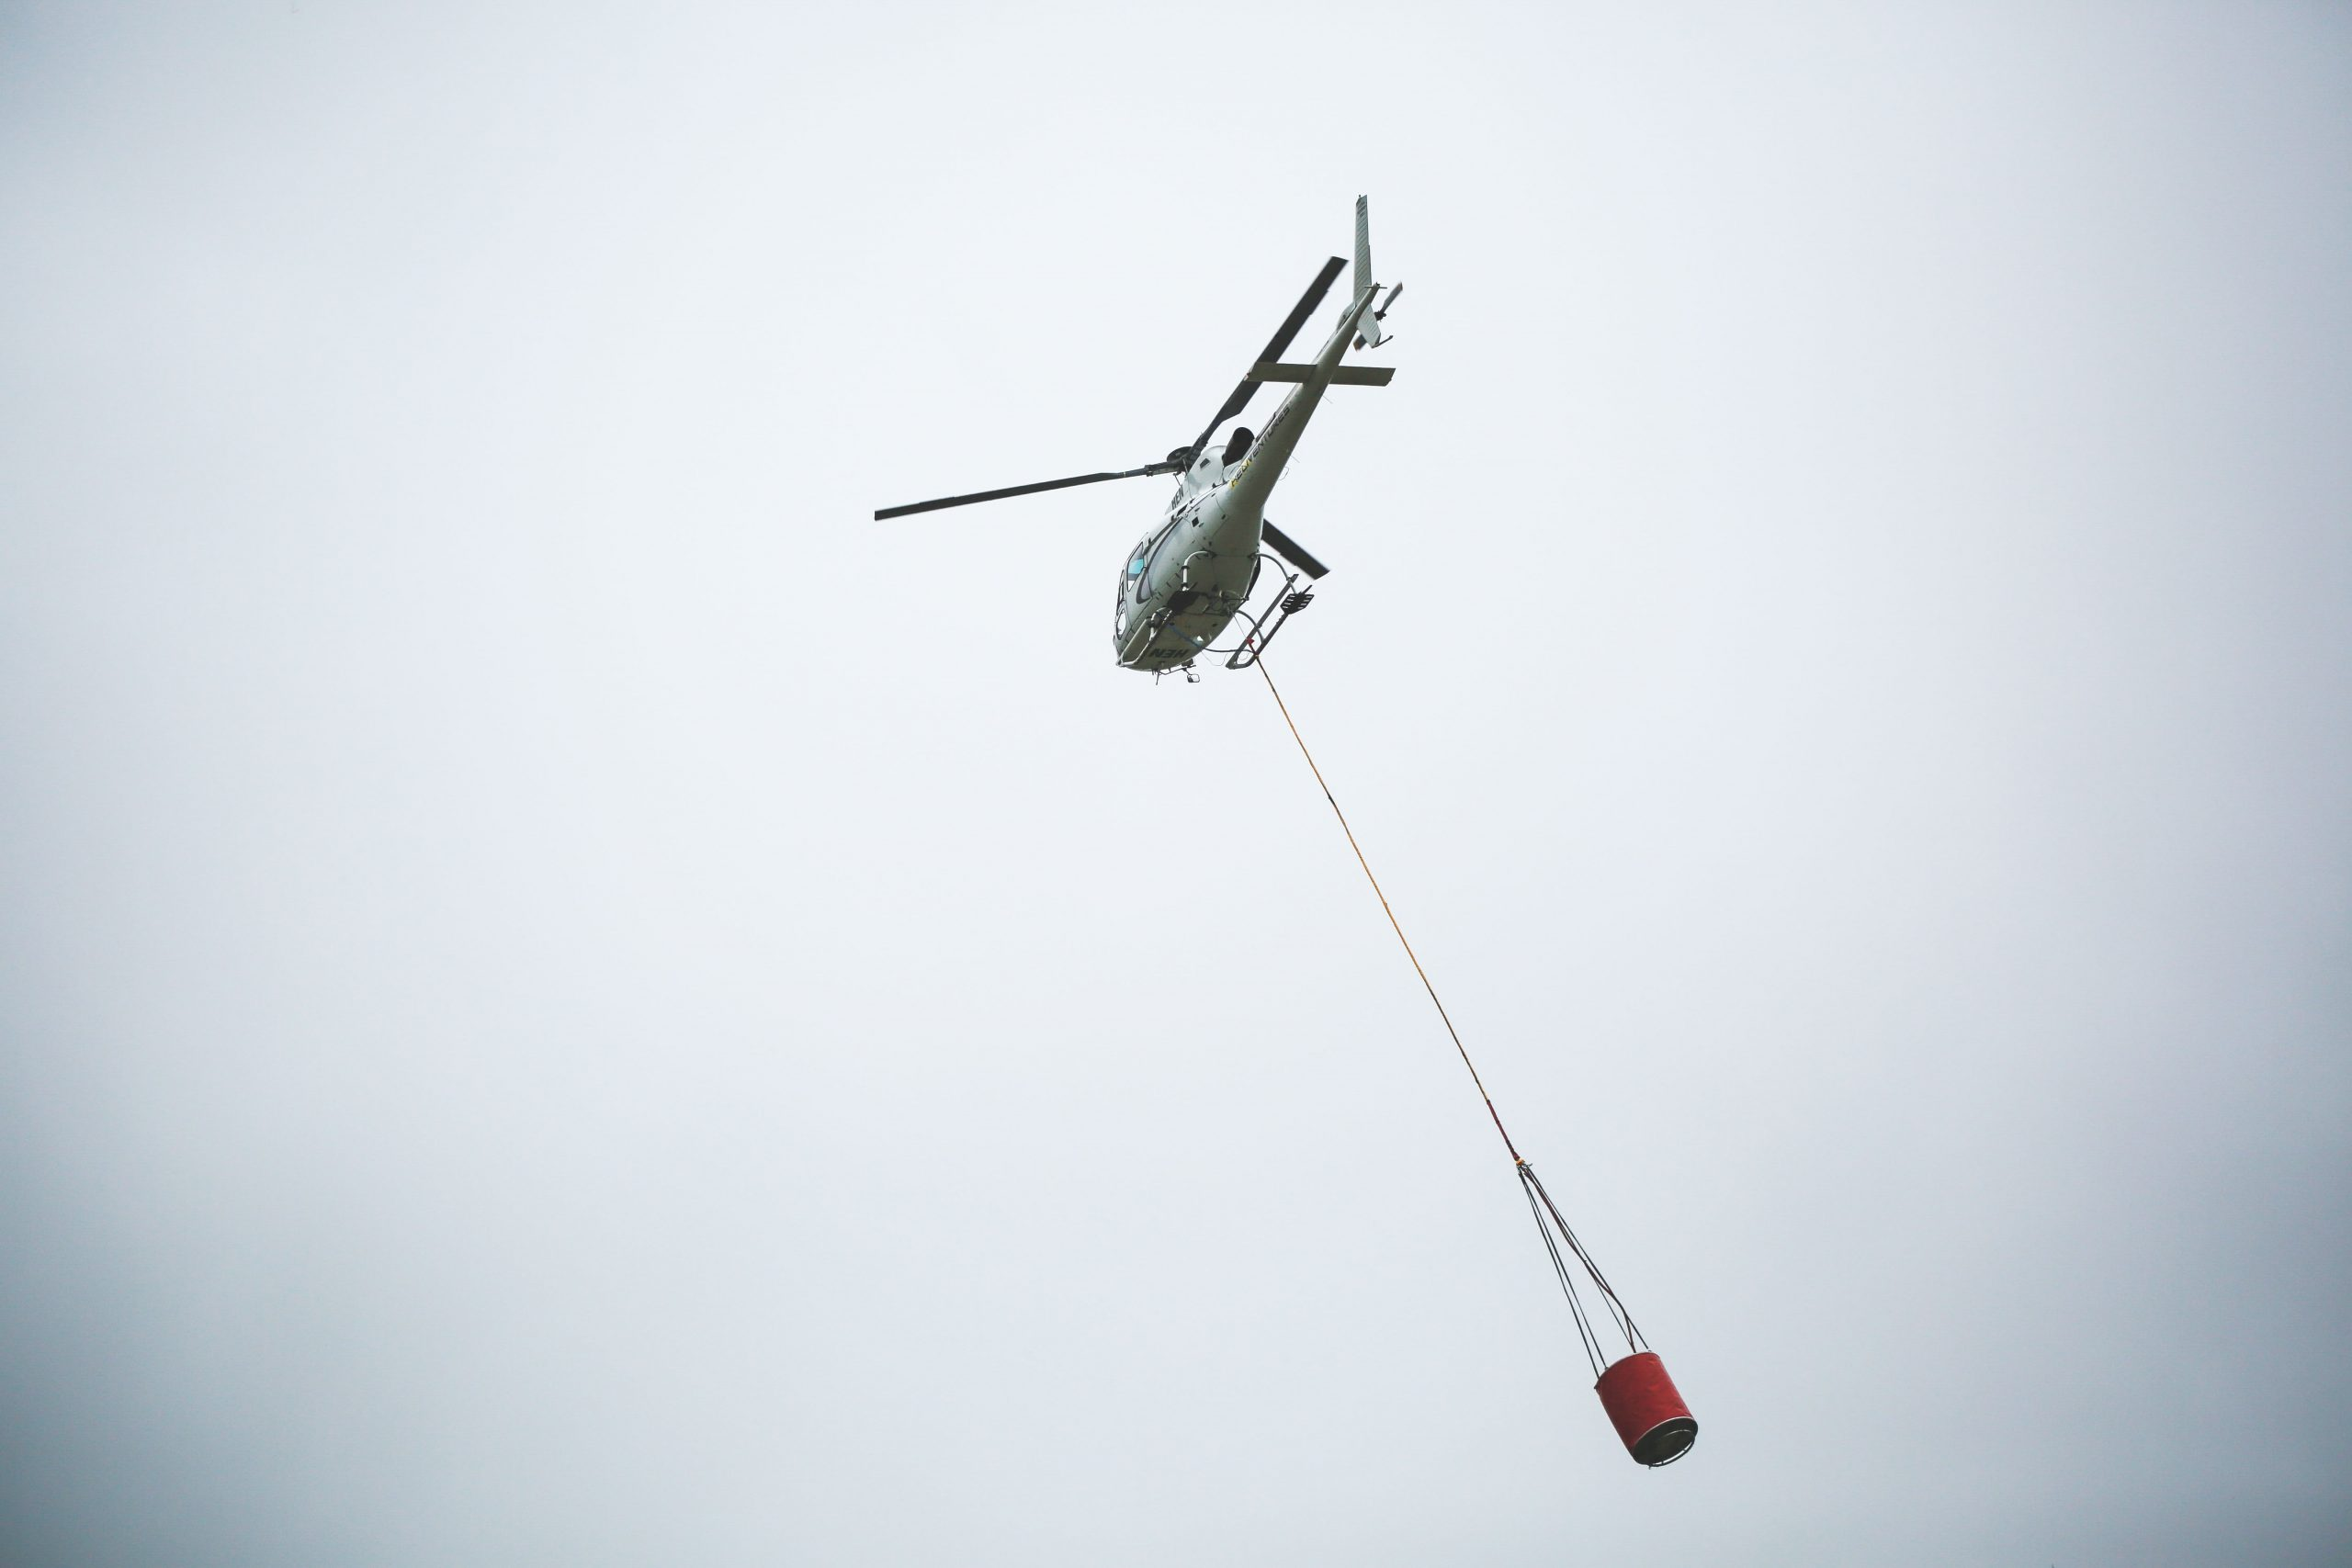 One farmer, whose pond was used during the emergency, knew there was no water for the helicopters...